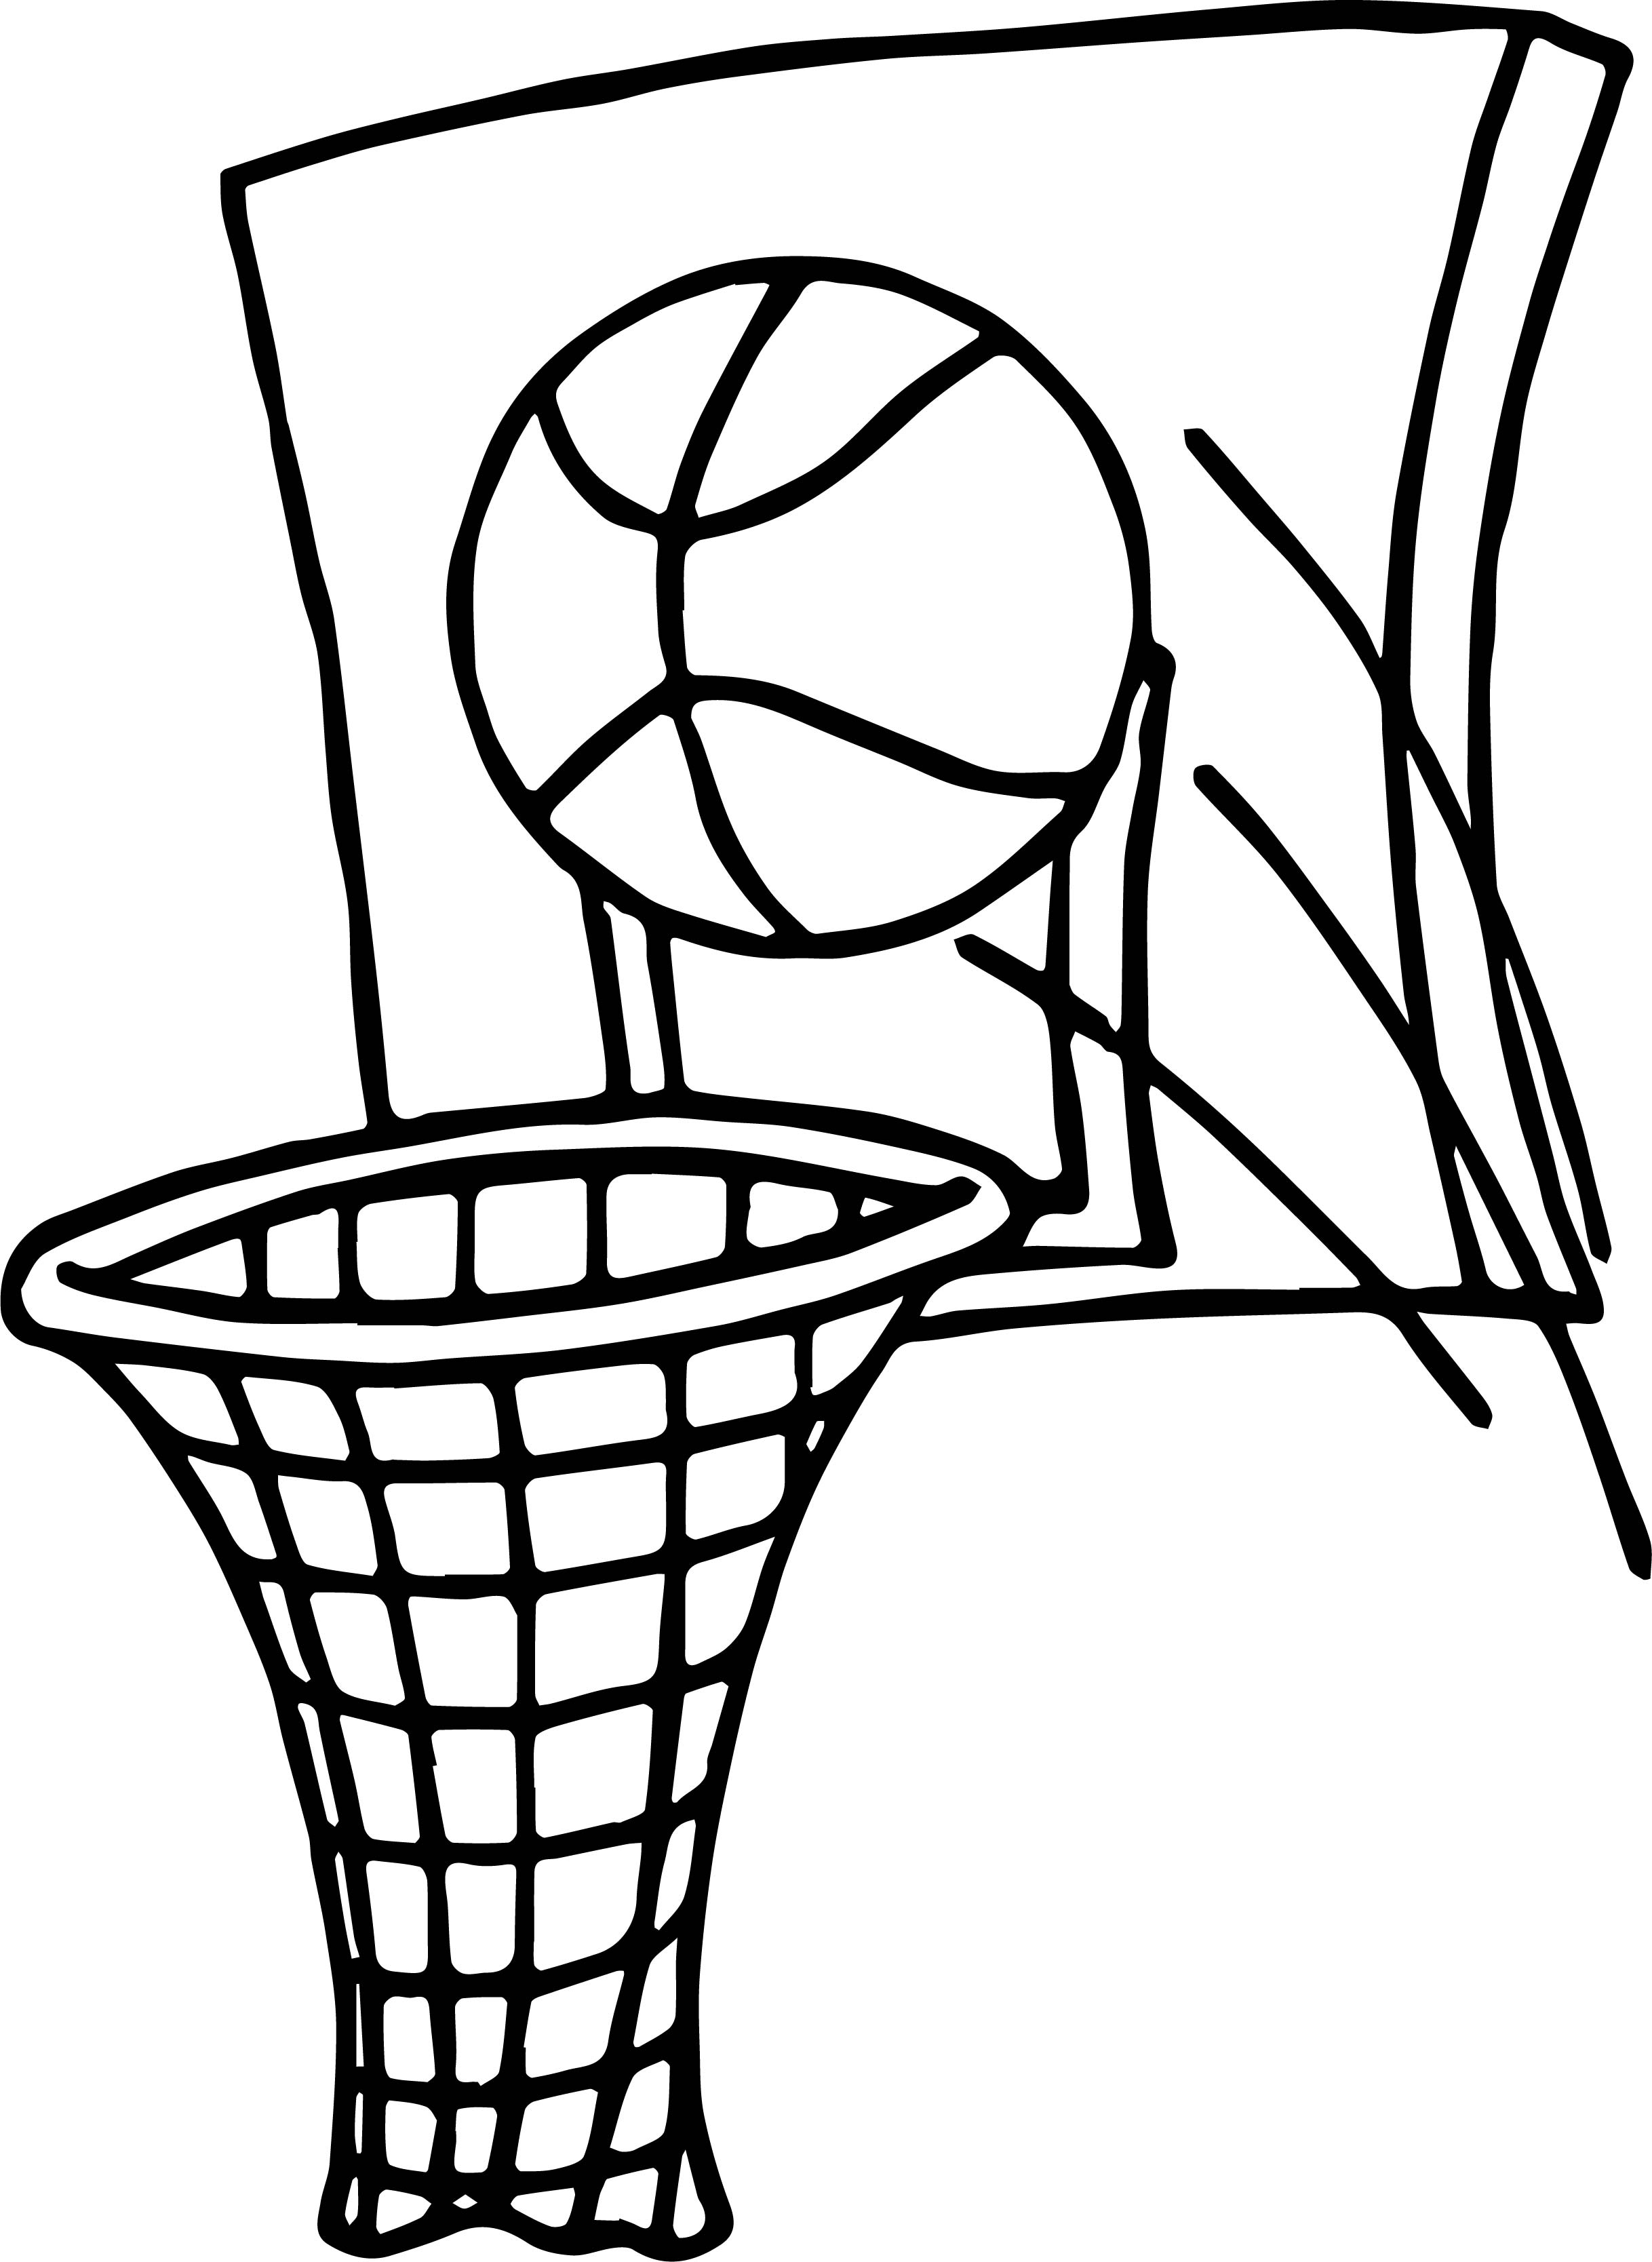 Collection Of Shot Clipart